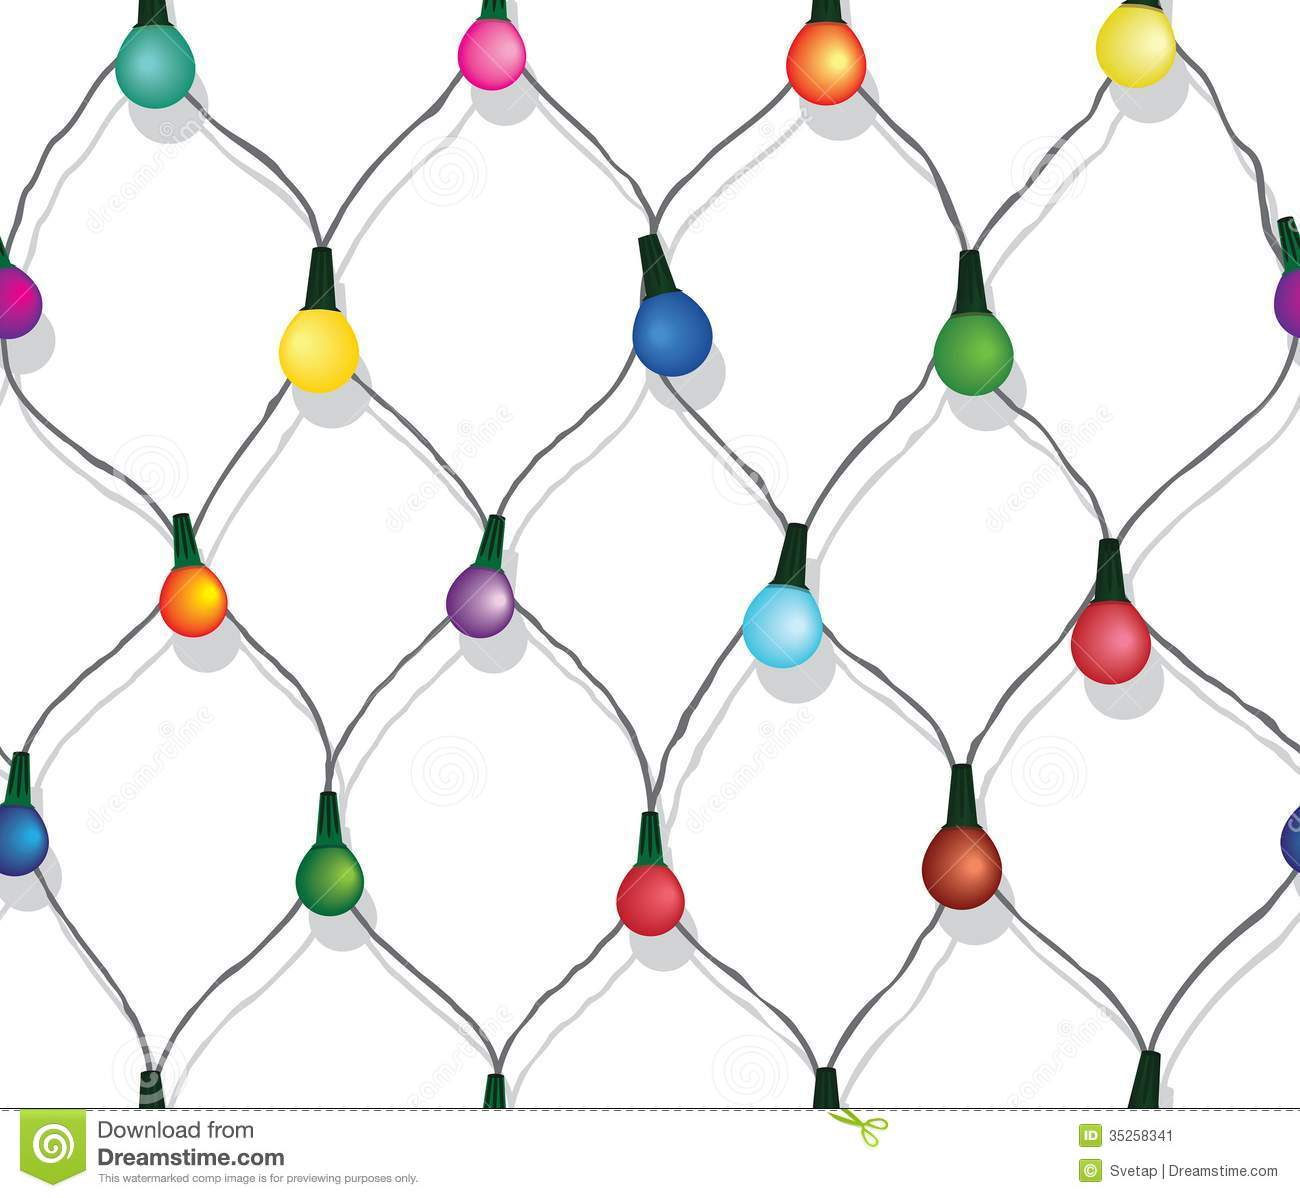 Best String Christmas Lights : String Of Christmas Lights Black And White Clipart - Clipart Suggest